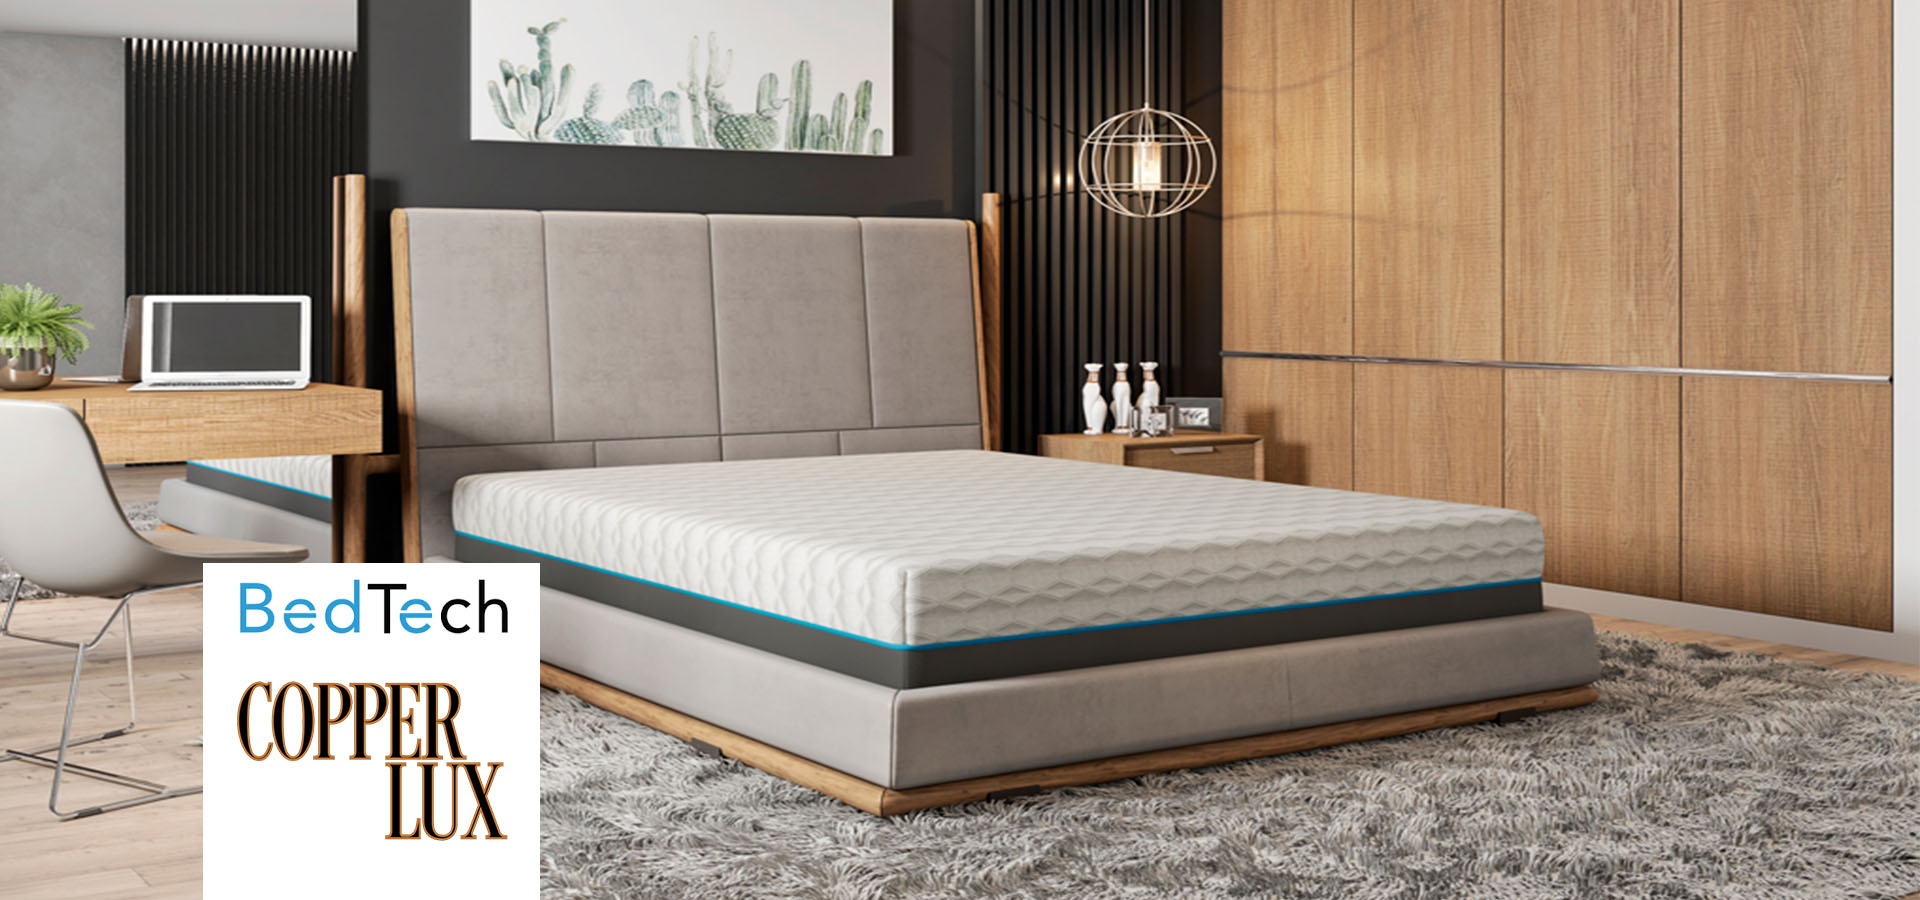 Bed Tech Copper Lux Mattress Rx For